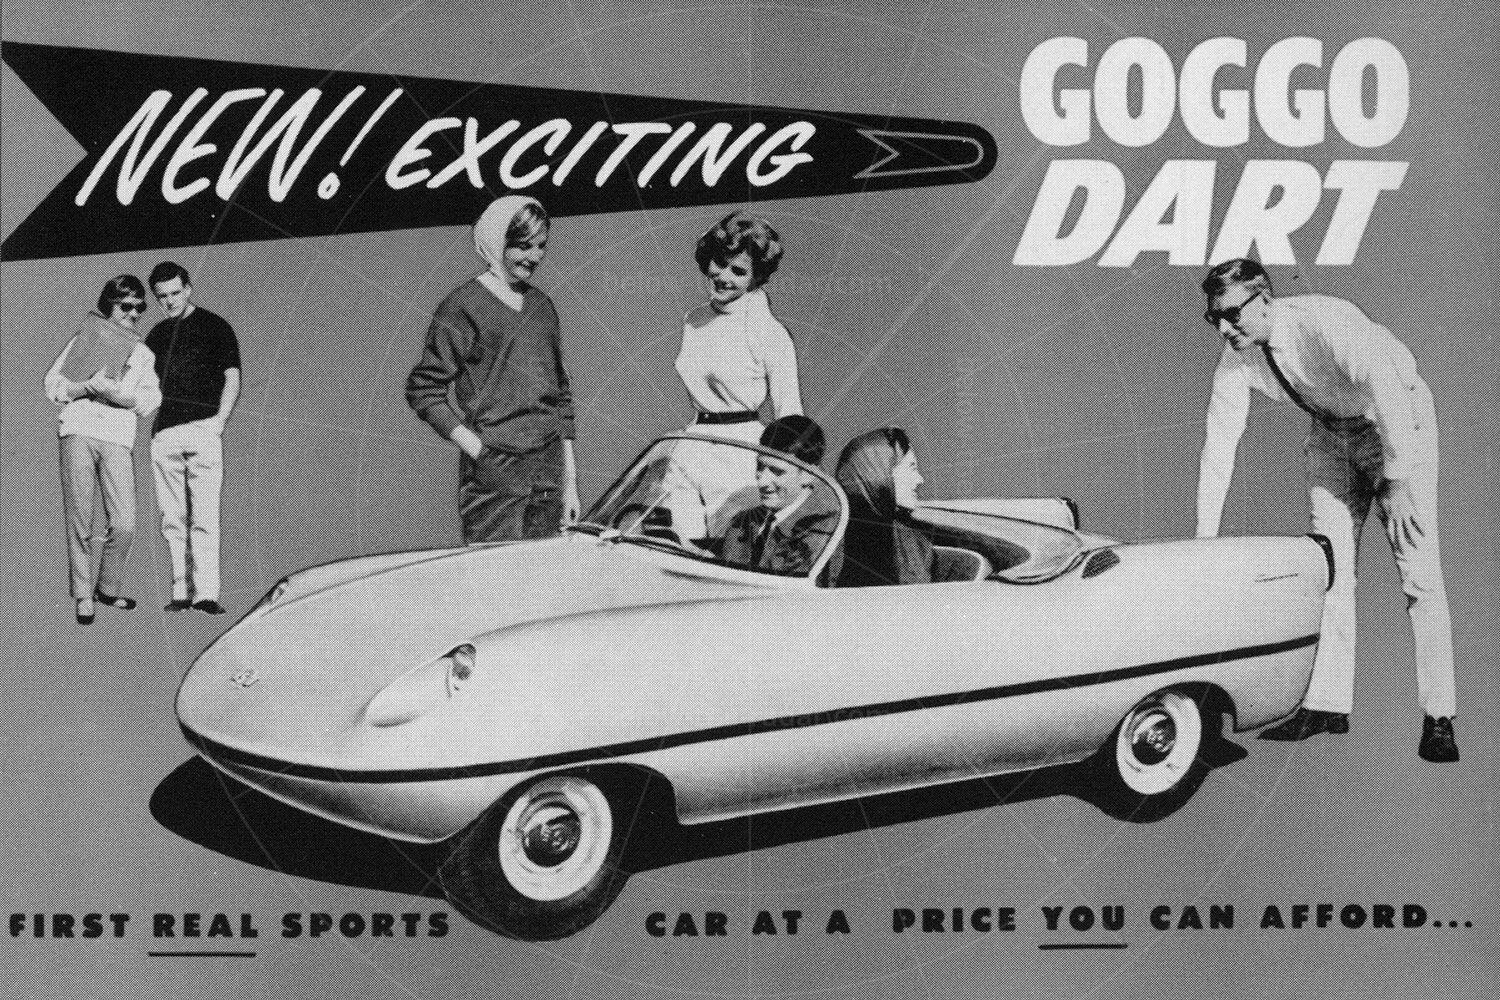 Goggomobil Dart advert Pic: magiccarpics.co.uk | Goggomobil Dart advert